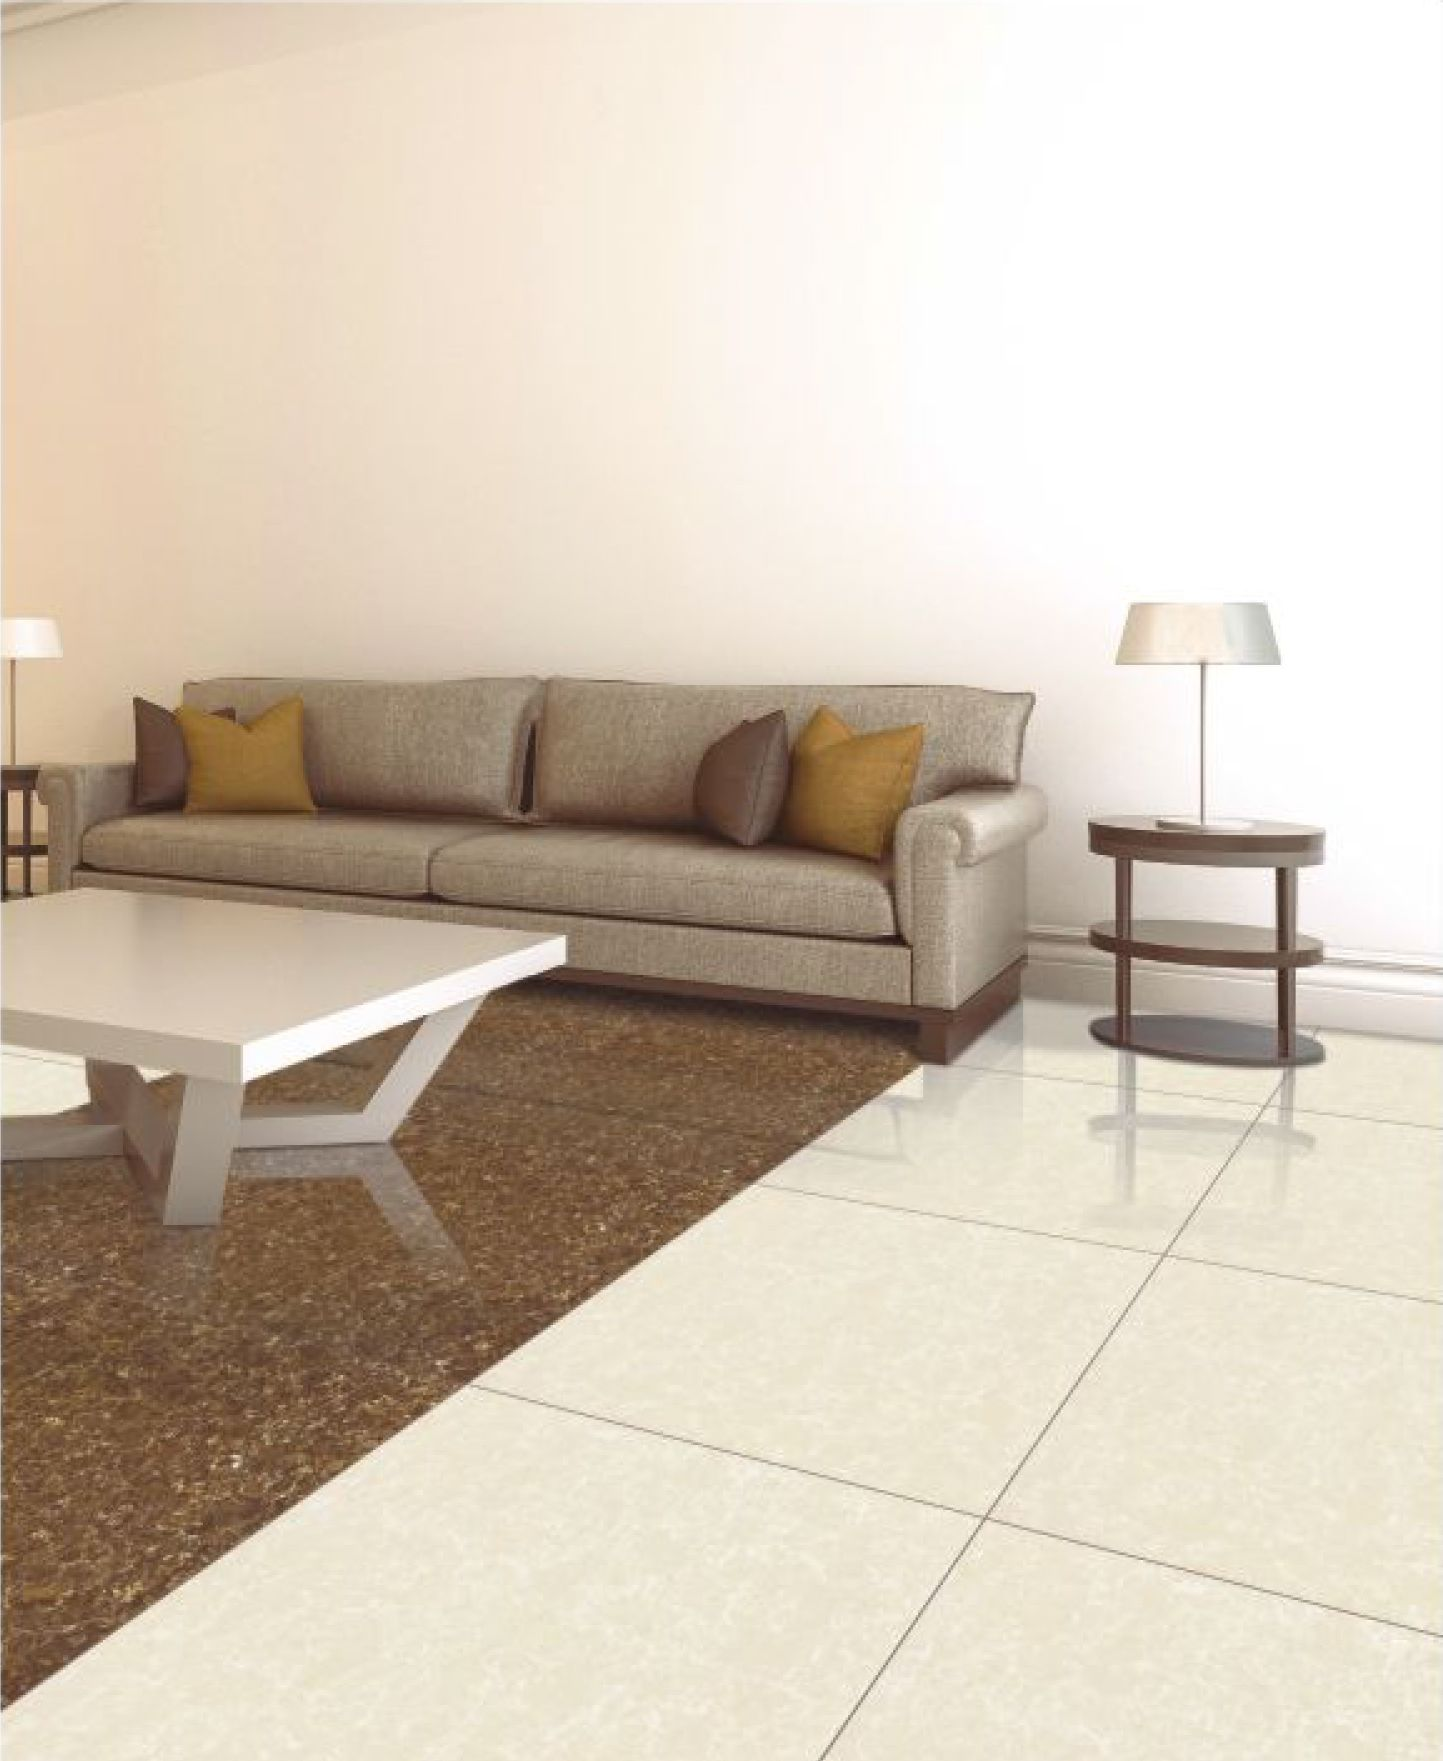 Double Charge Floor Tiles Tile Manufacturers Tiles